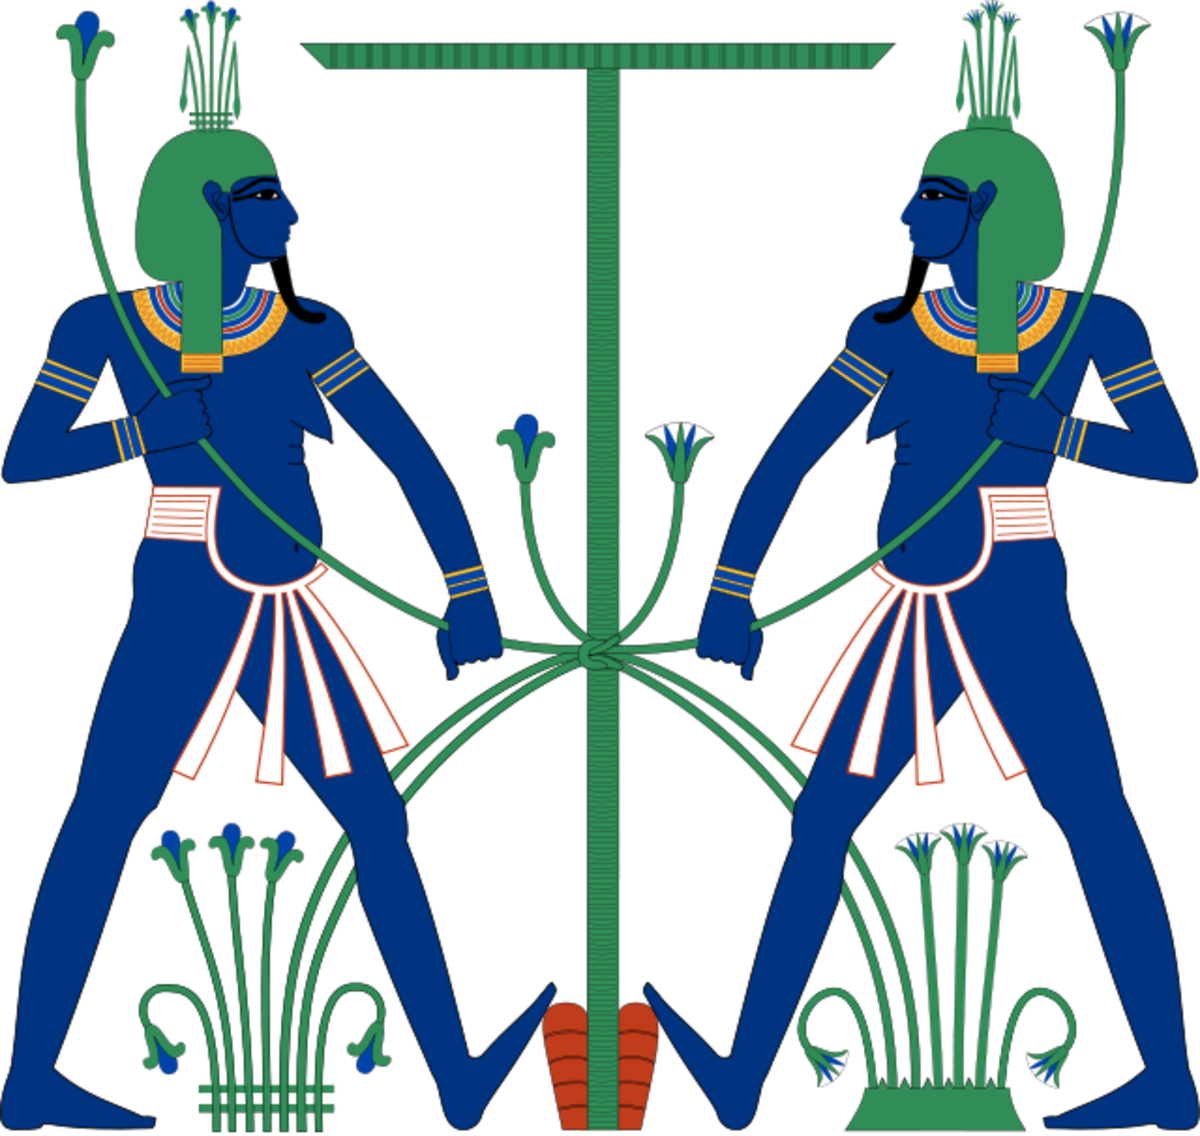 In the ancient Egyptian religion, Hapi was the god of the flooding of the Nile, which took place each year. The image shows Hopi represented as two genies, symbolically tying together upper and lower Egypt.